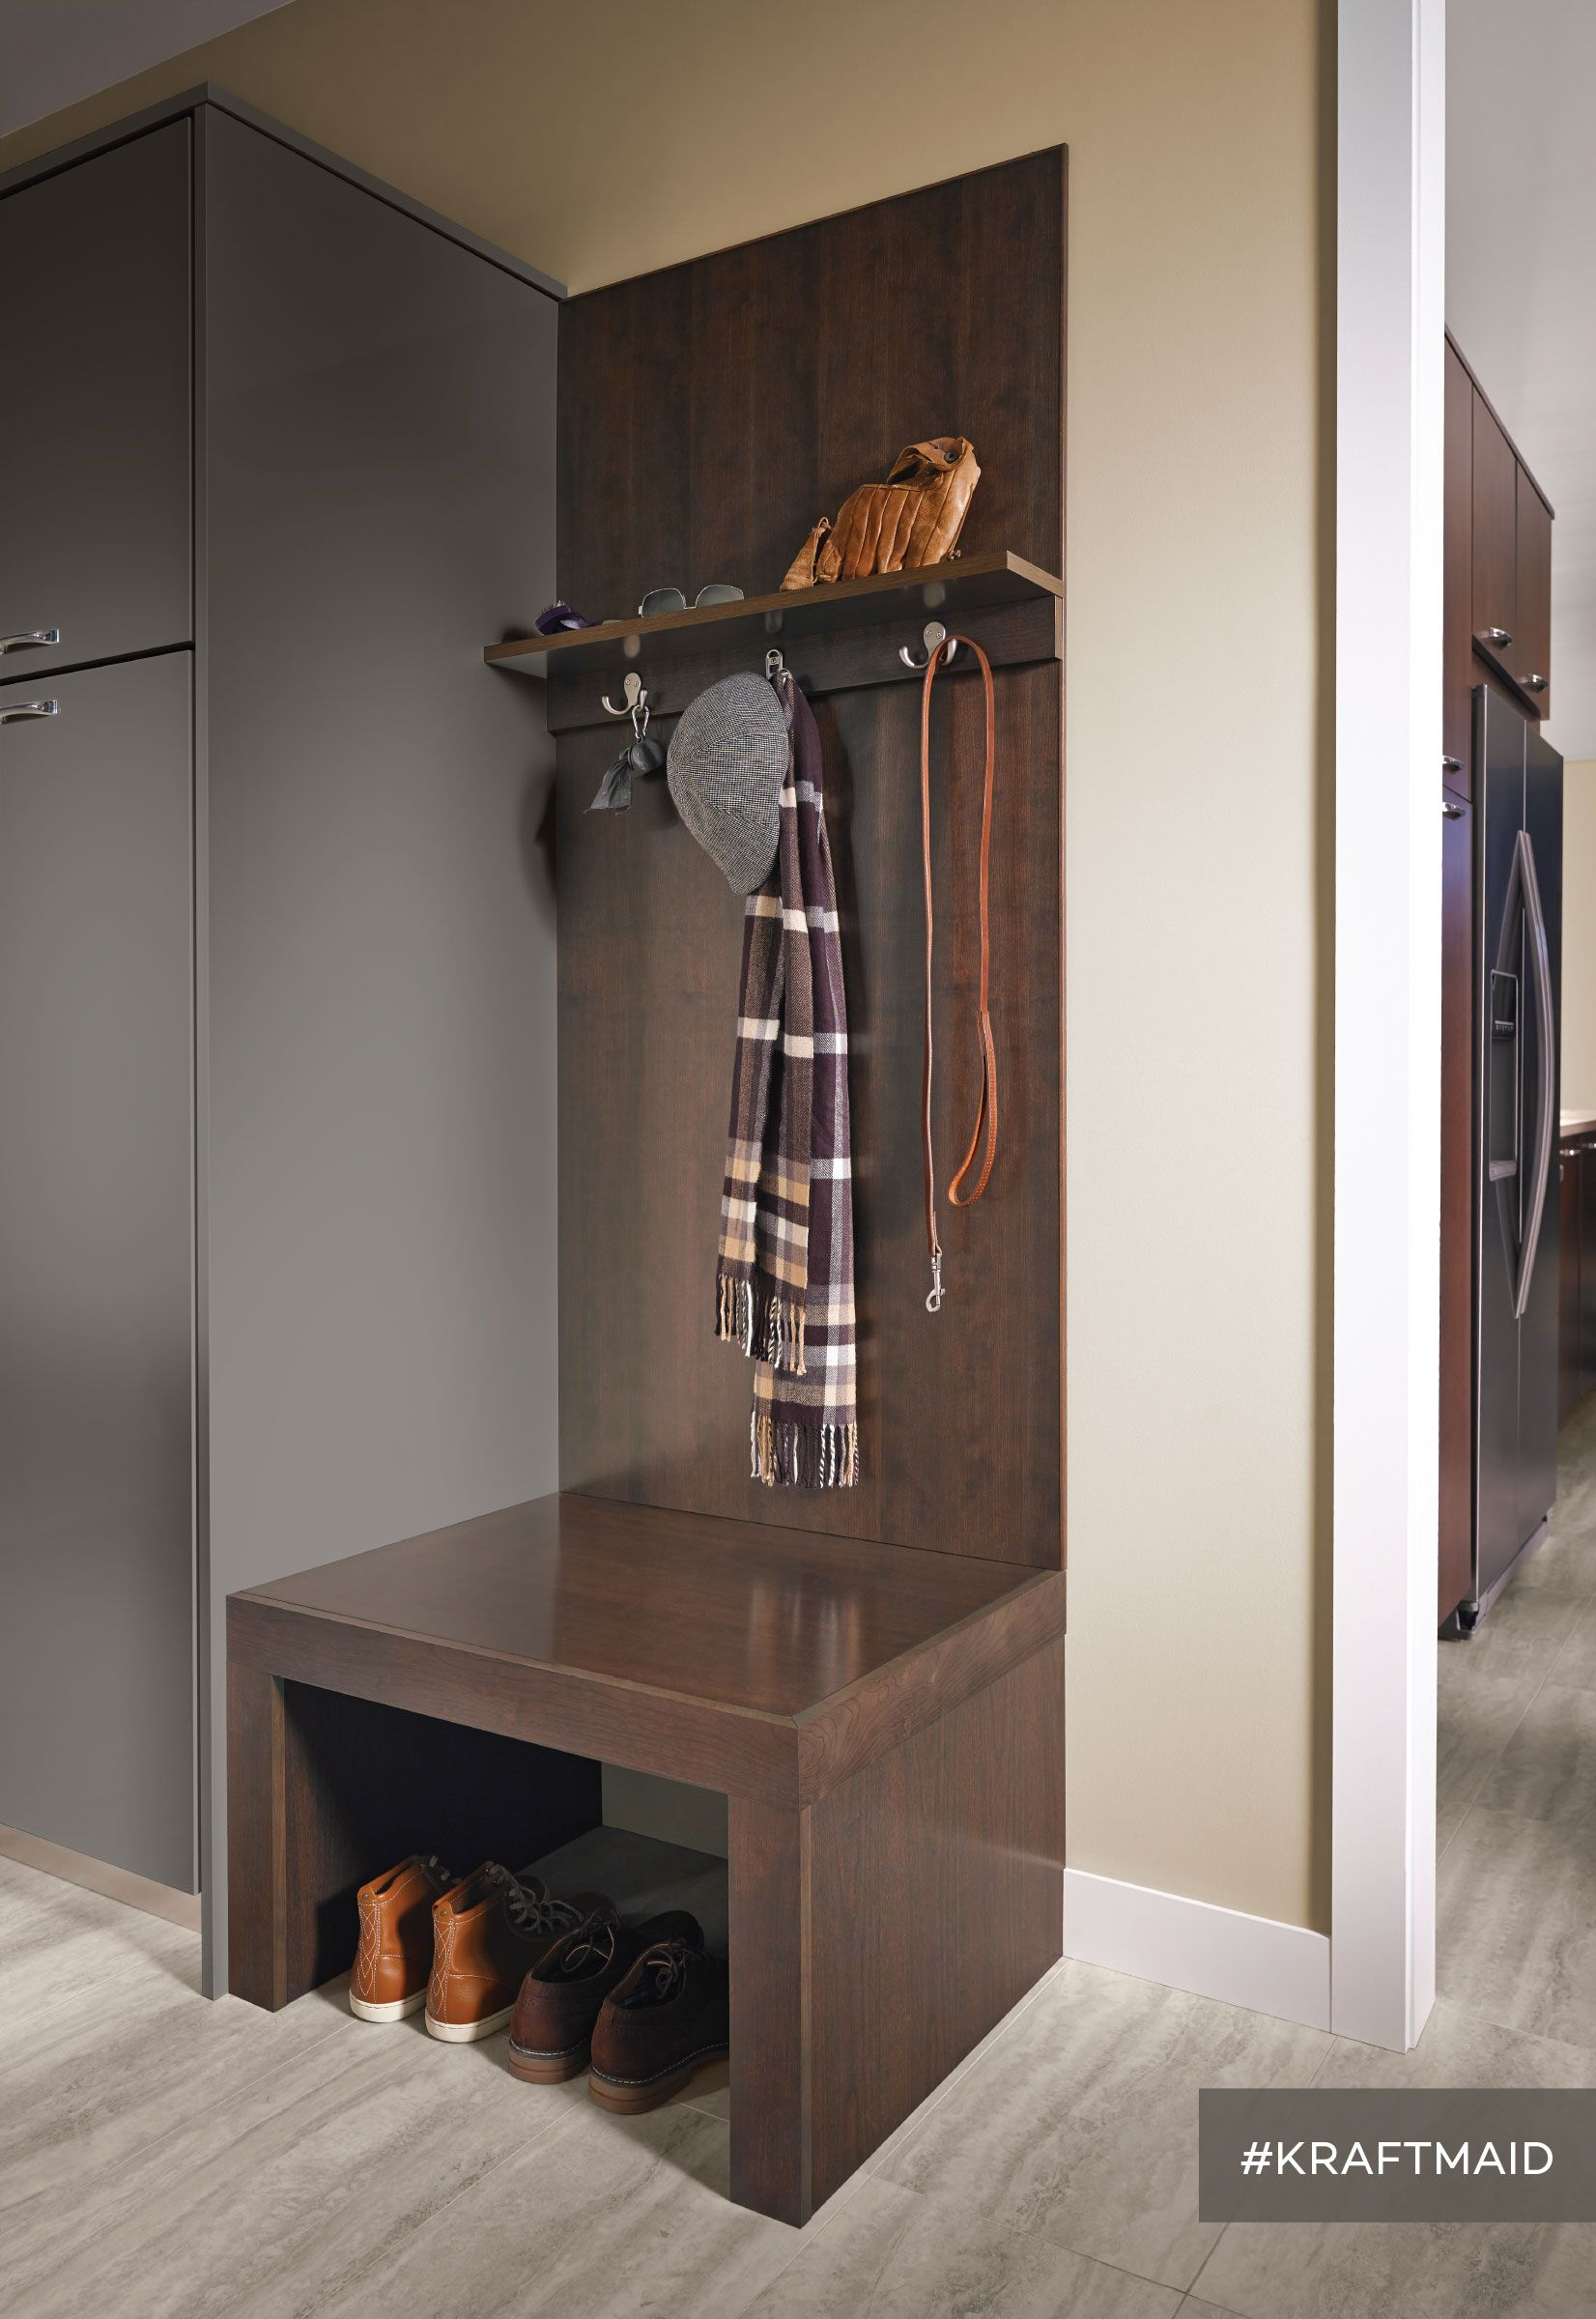 The seating area in this contemporary mudroom has plenty of hooks